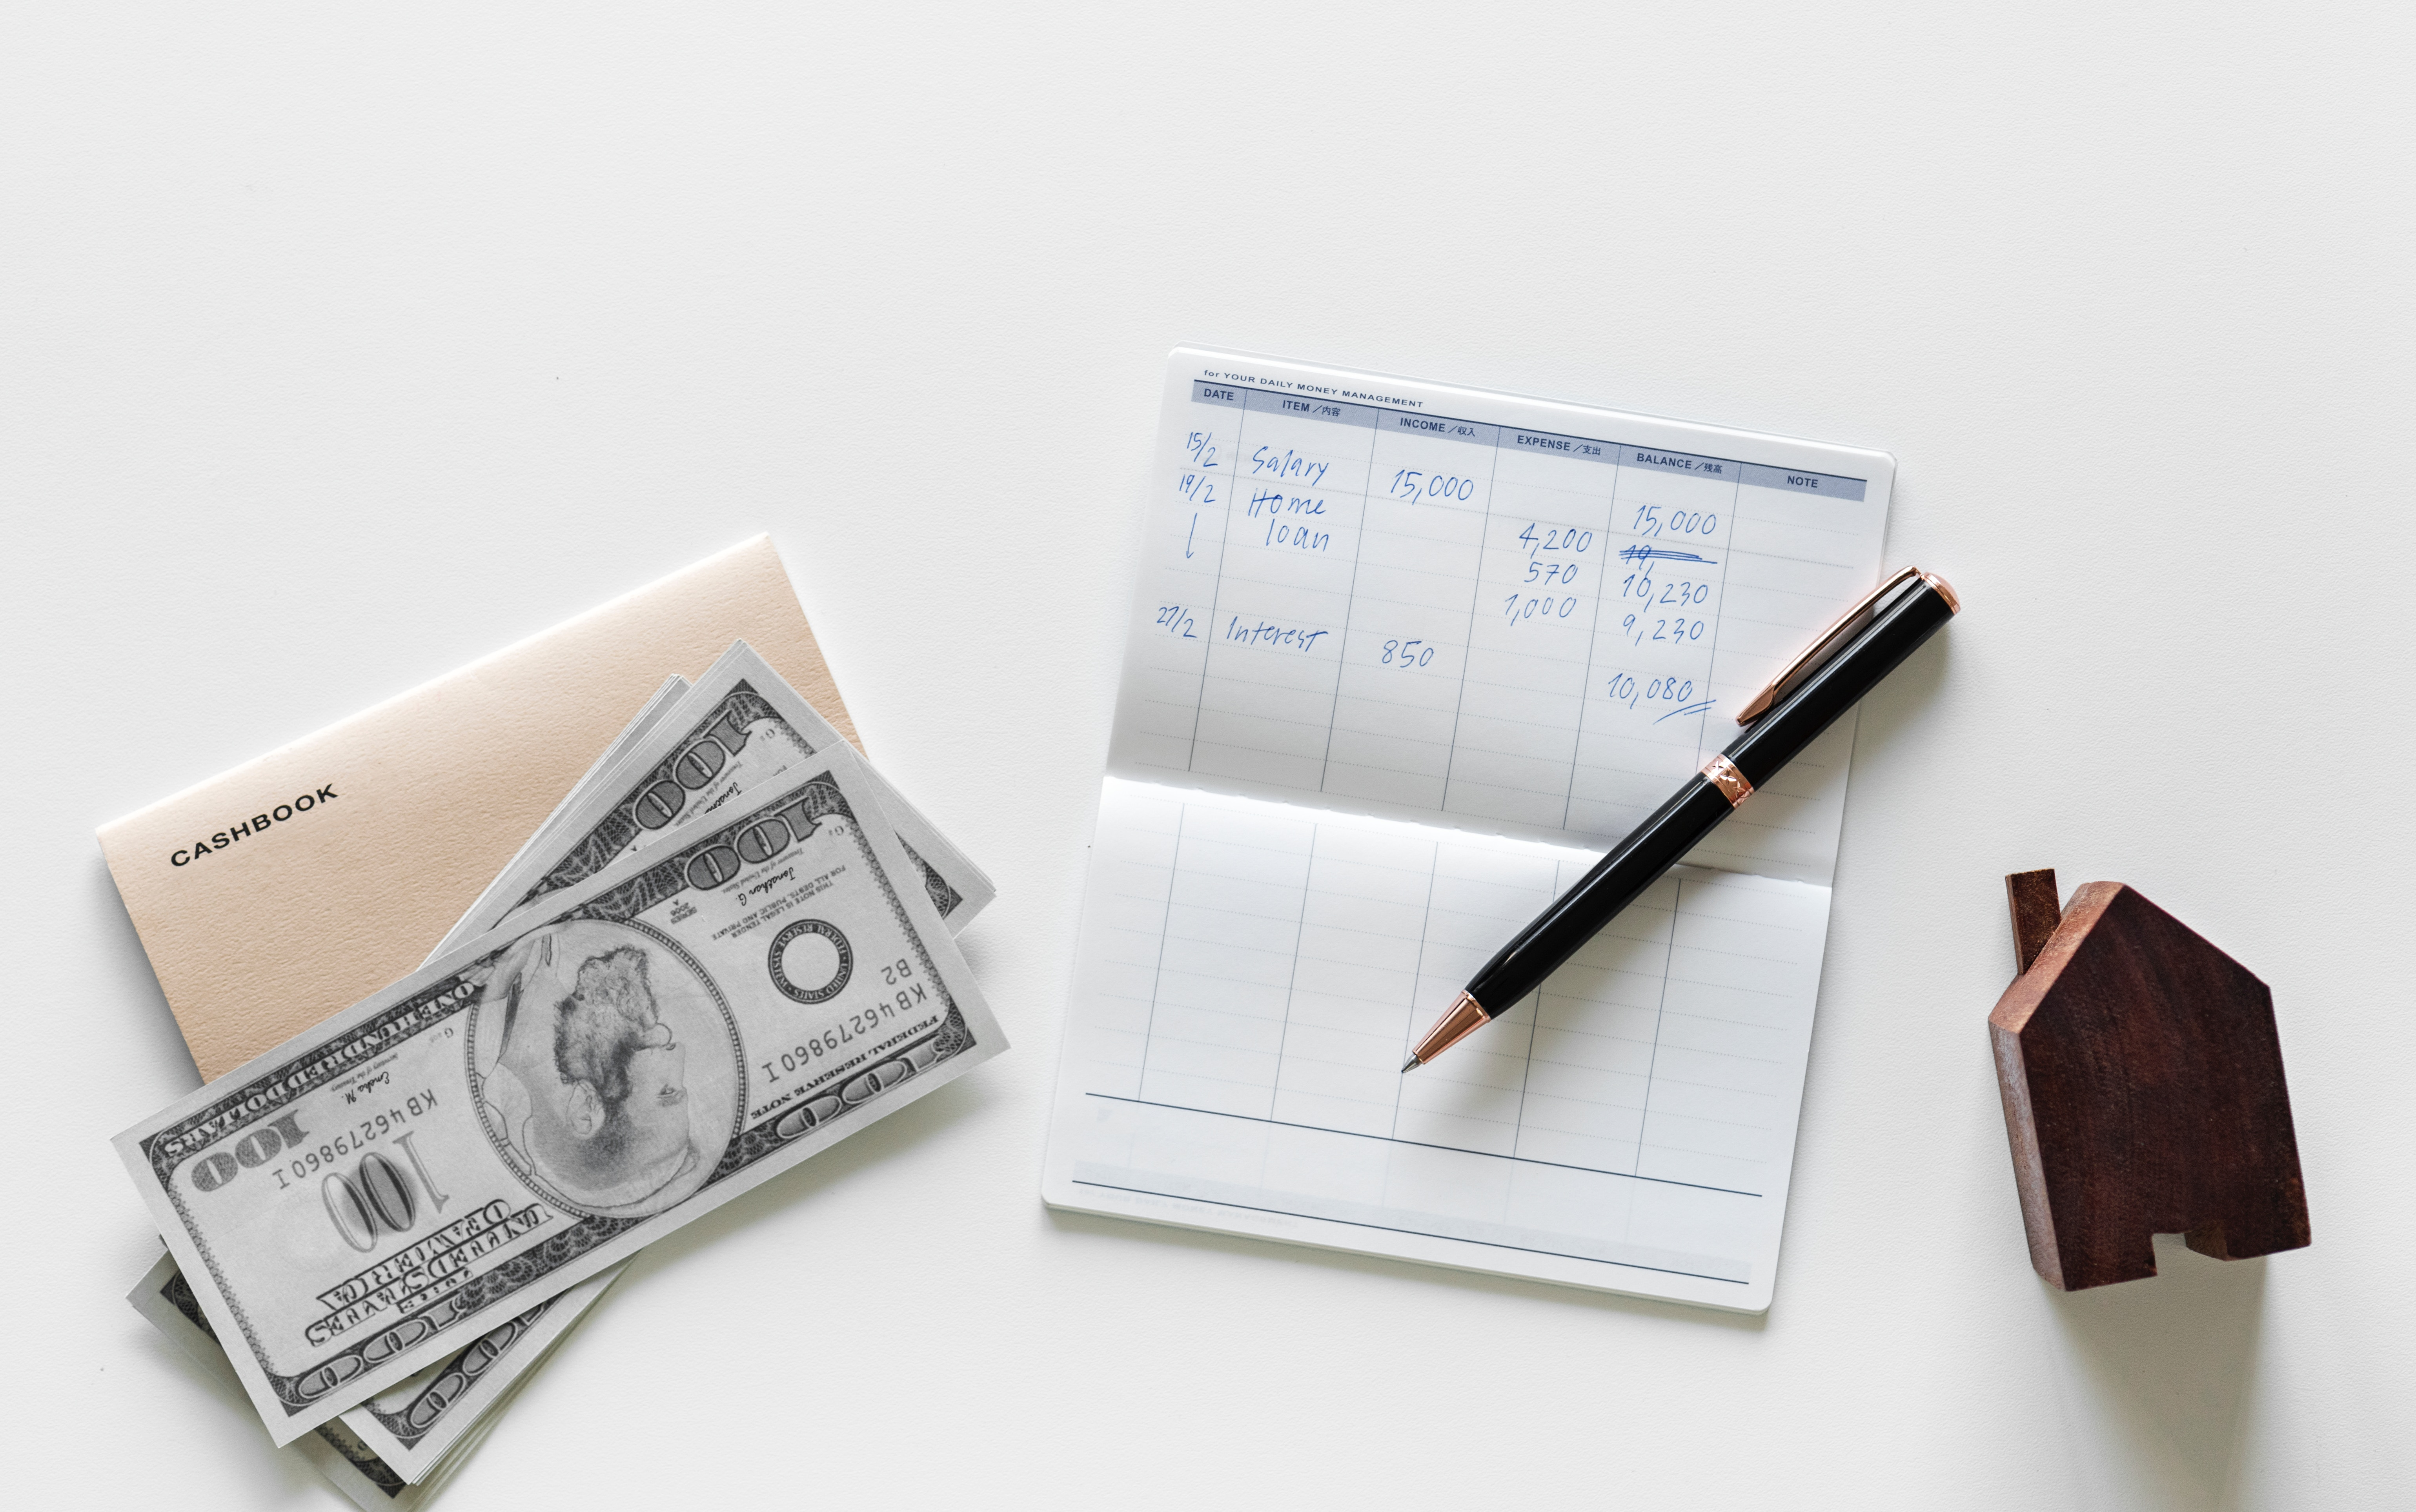 Do you quallify for down payment assistance?